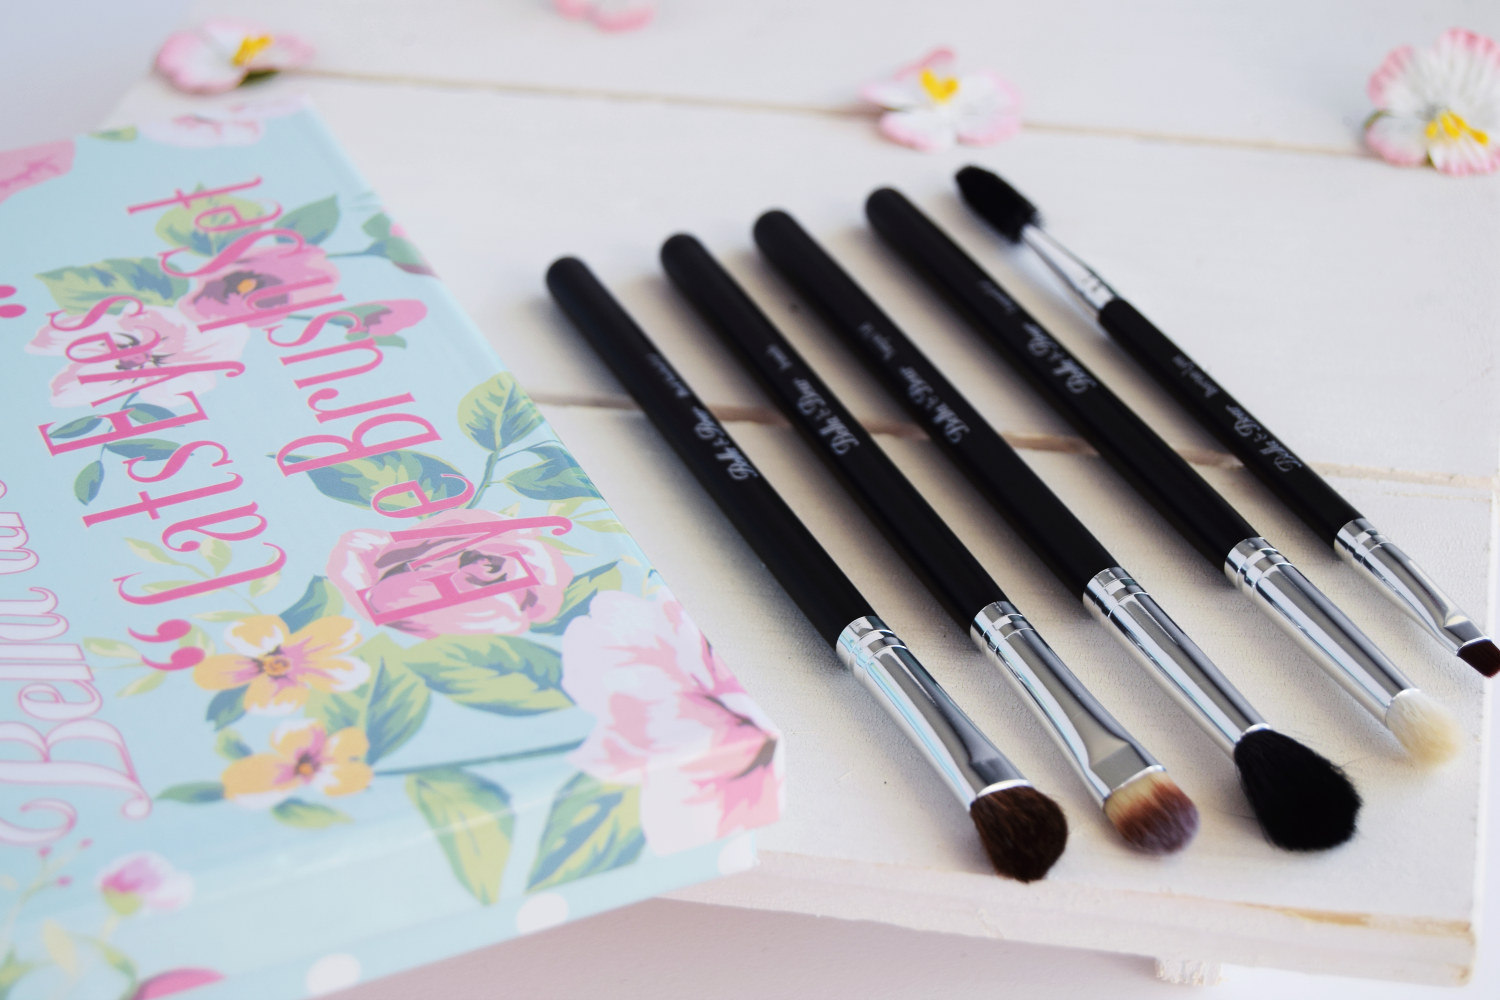 bella_and_bears_cats_eyes_eye_brush_set_zalabell_beauty_review_3